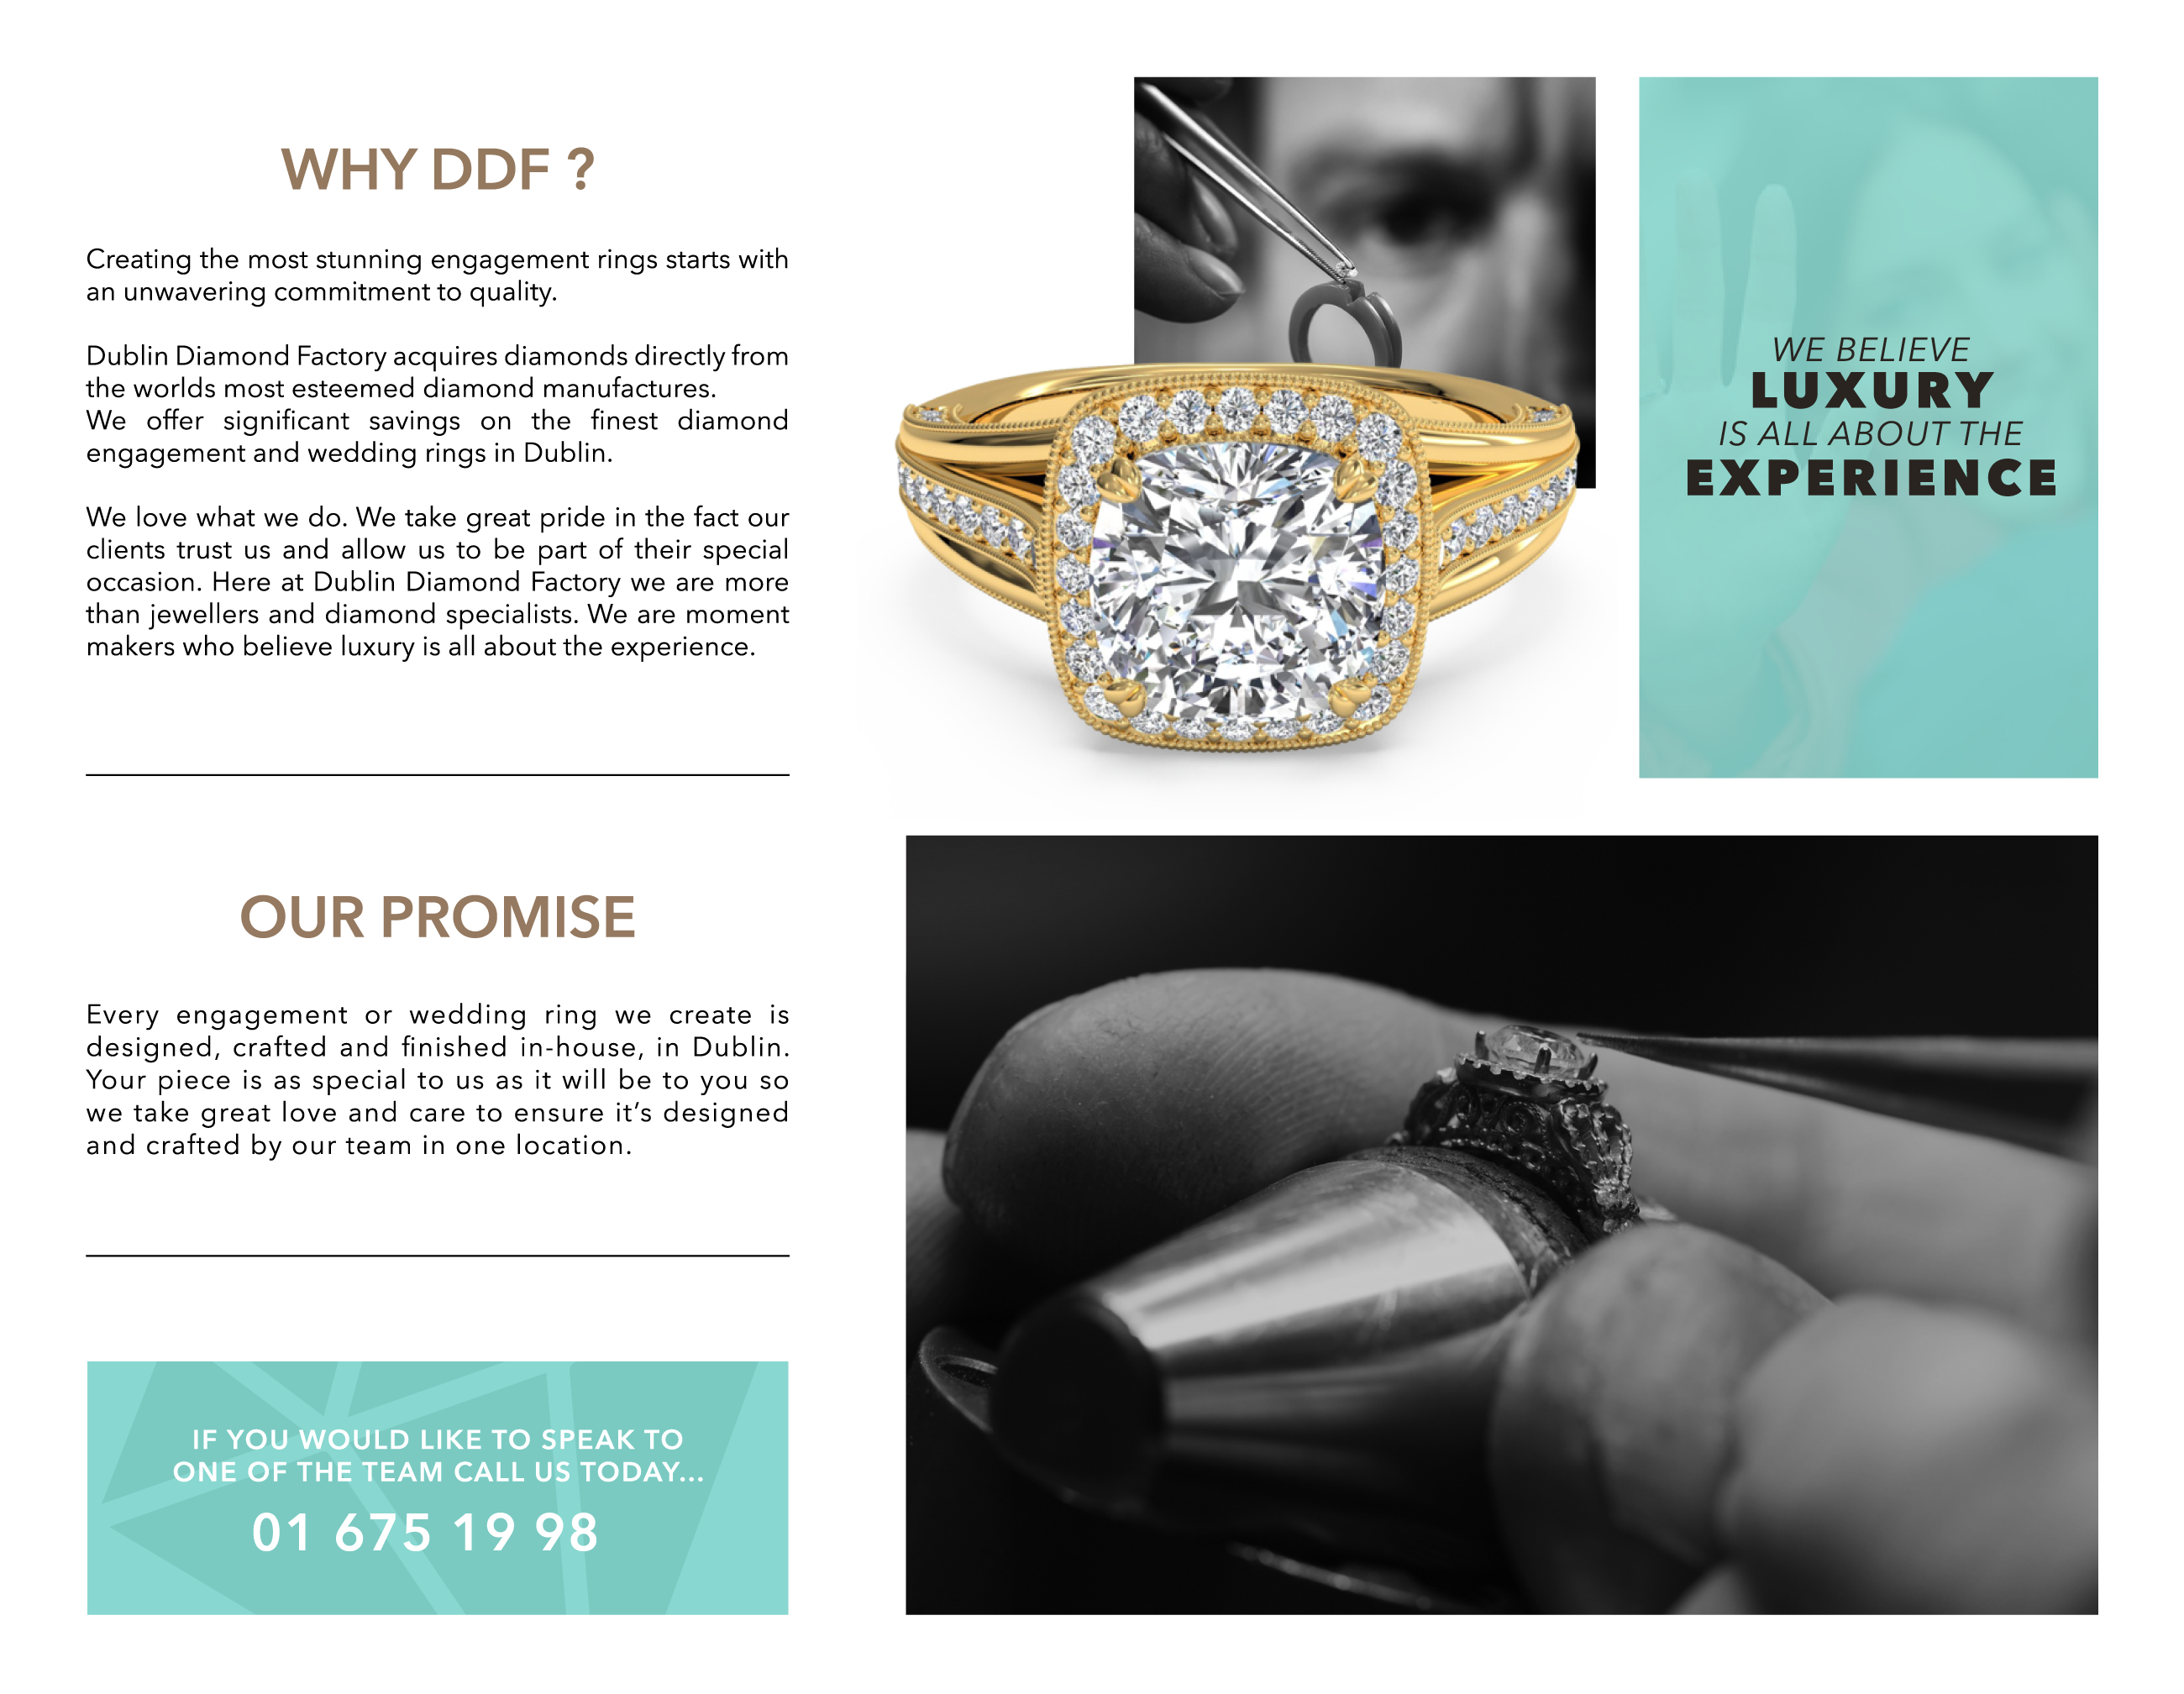 Bespoke Diamond Design